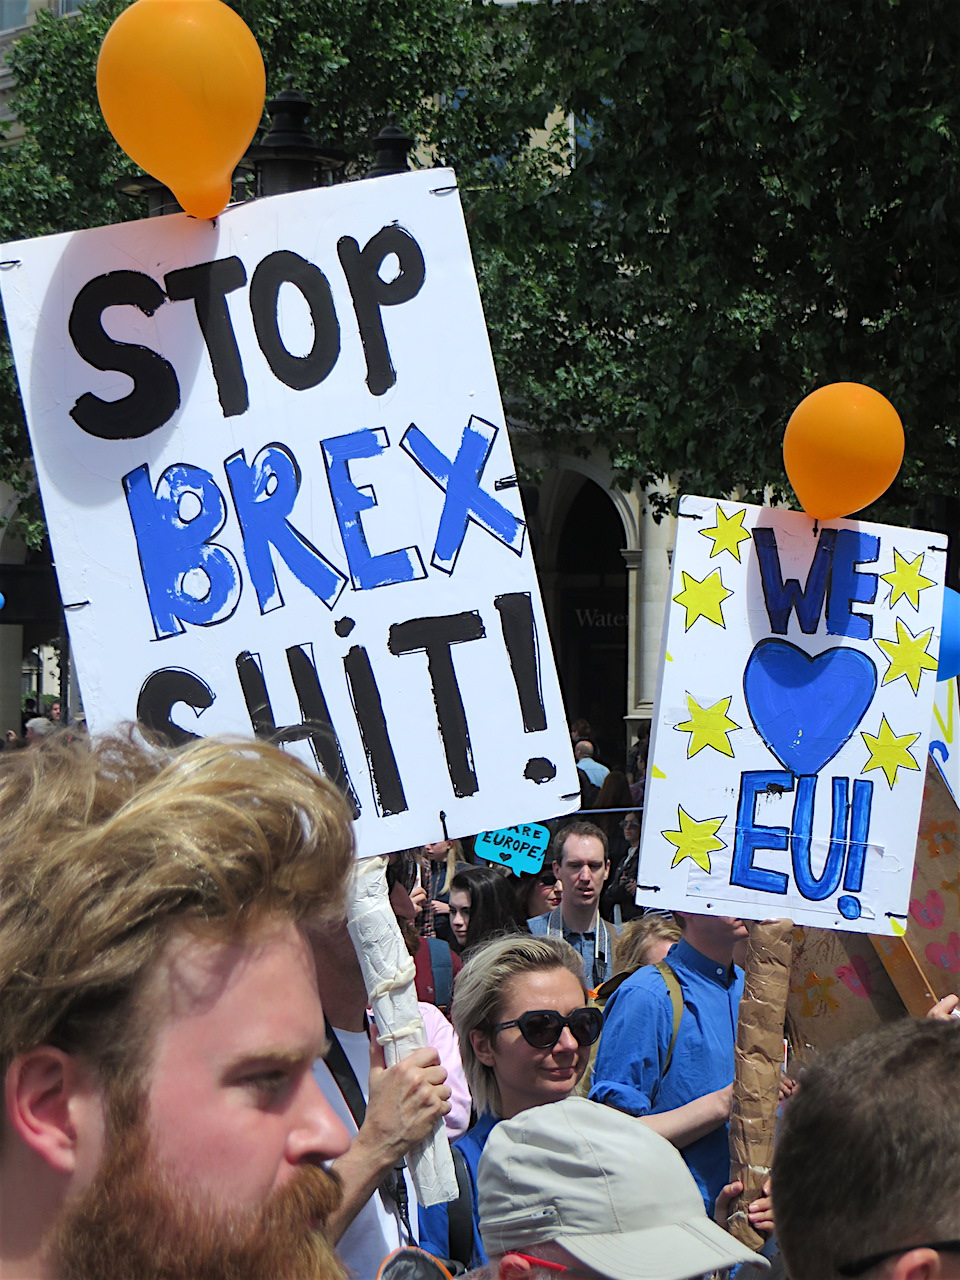 Stop-Brex-sh*t: a placard from the March for Europe in London on July 2, 2016 (Photo: Andy Worthington).